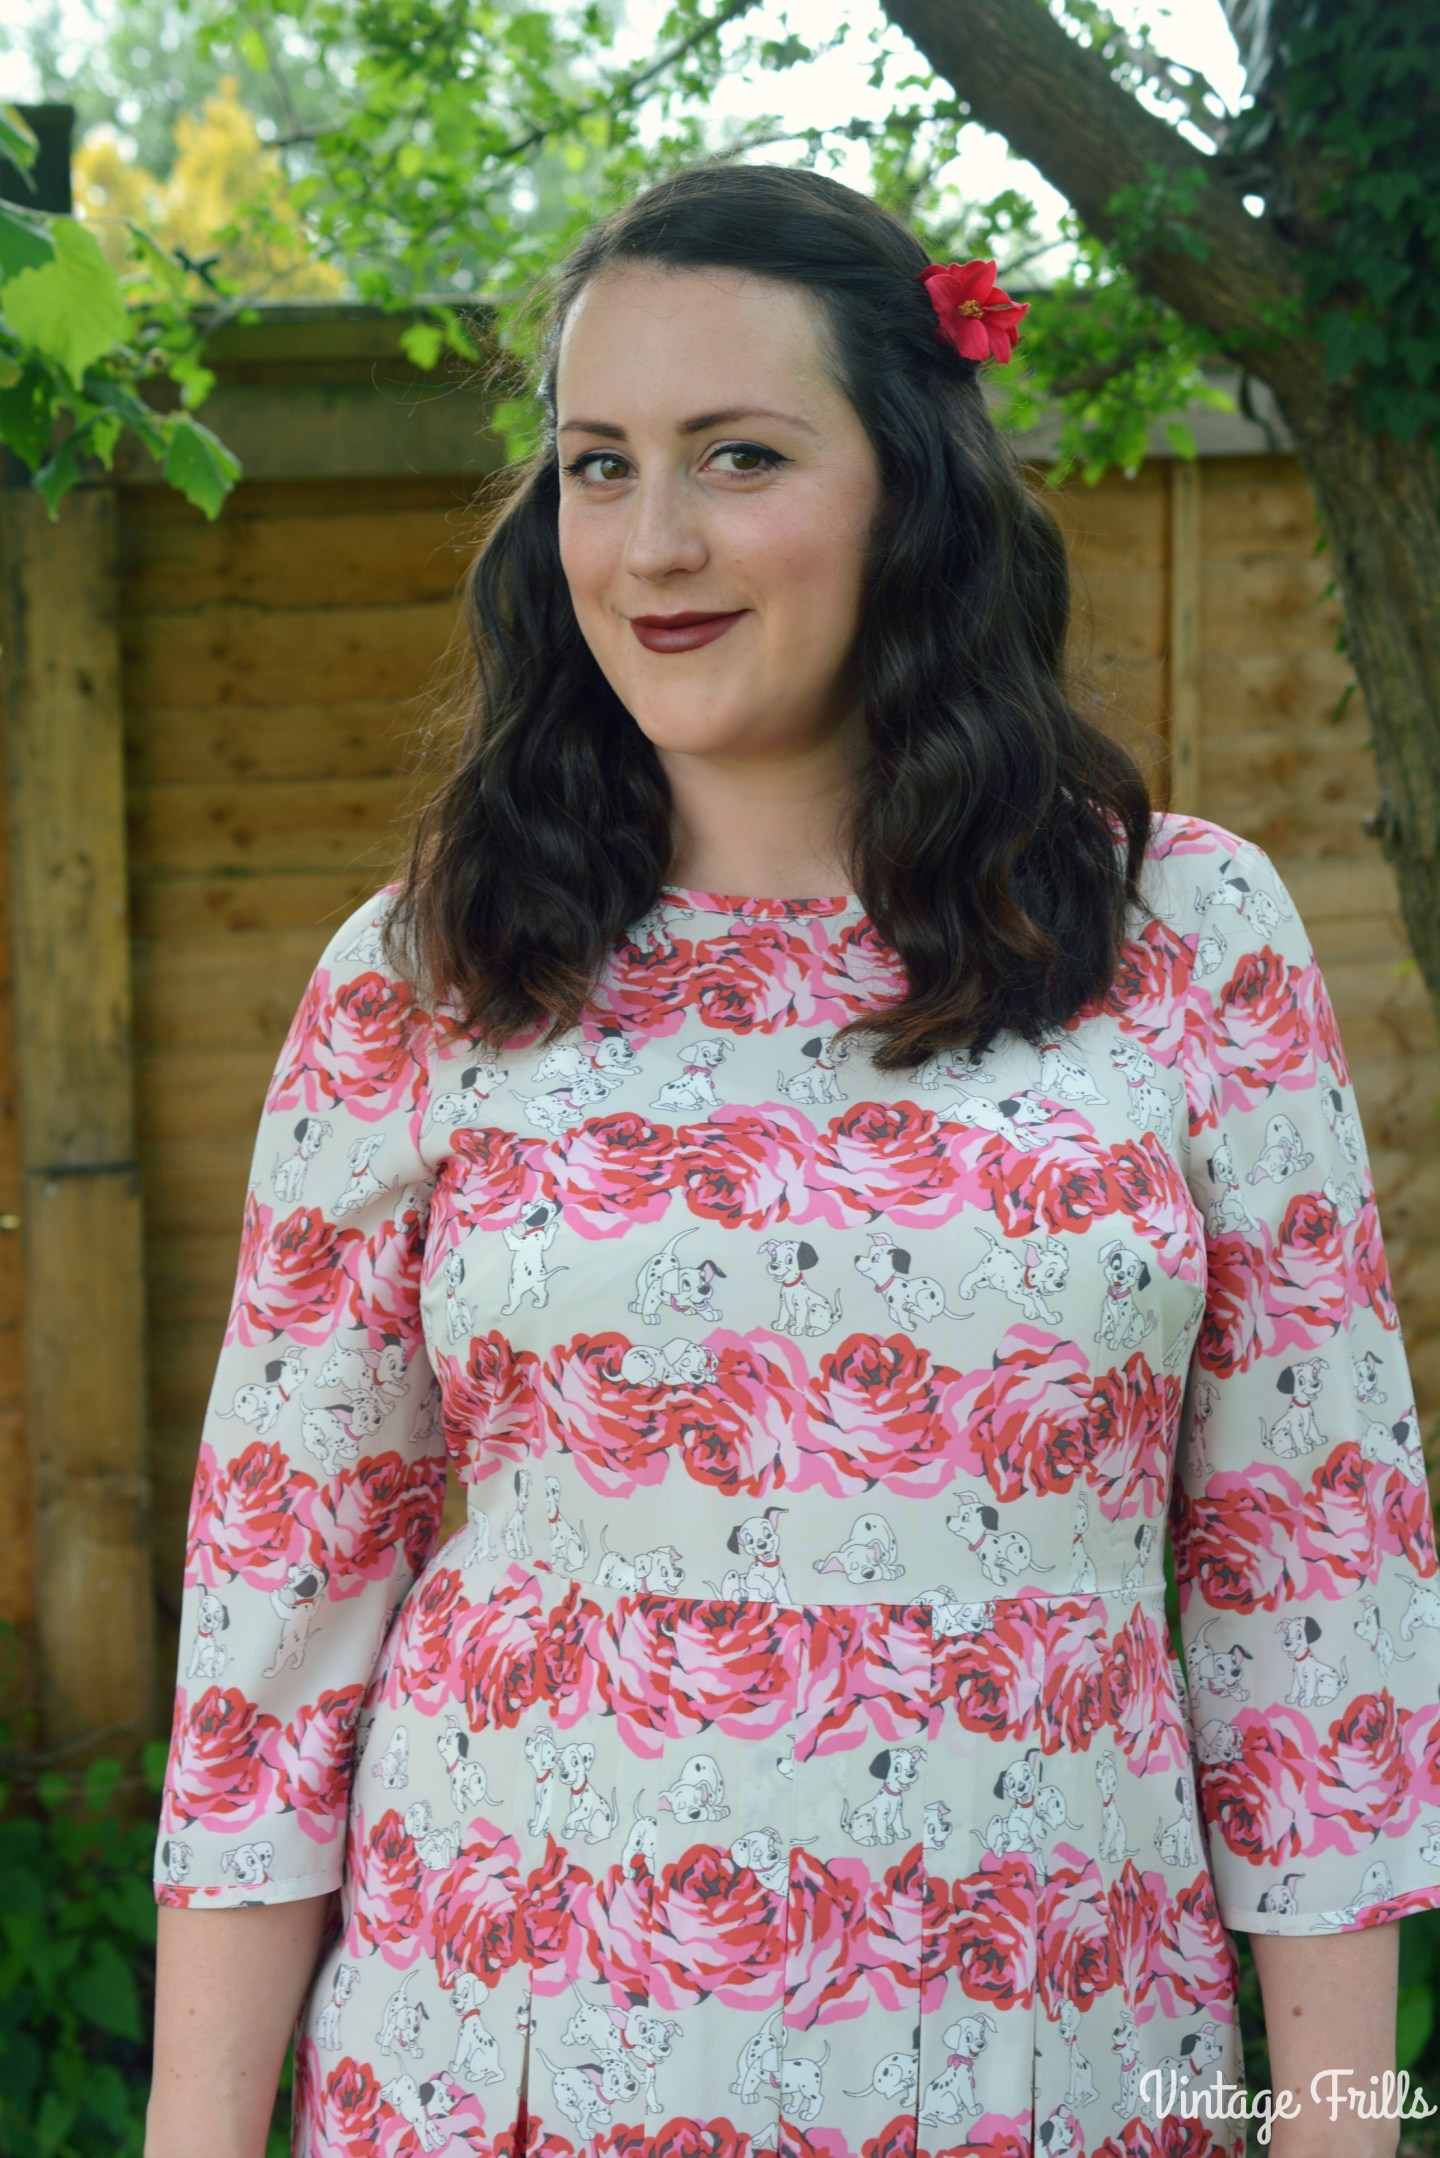 Disney Cath Kidston 101 Dalmations Puppy and Rose Dress #OOTD